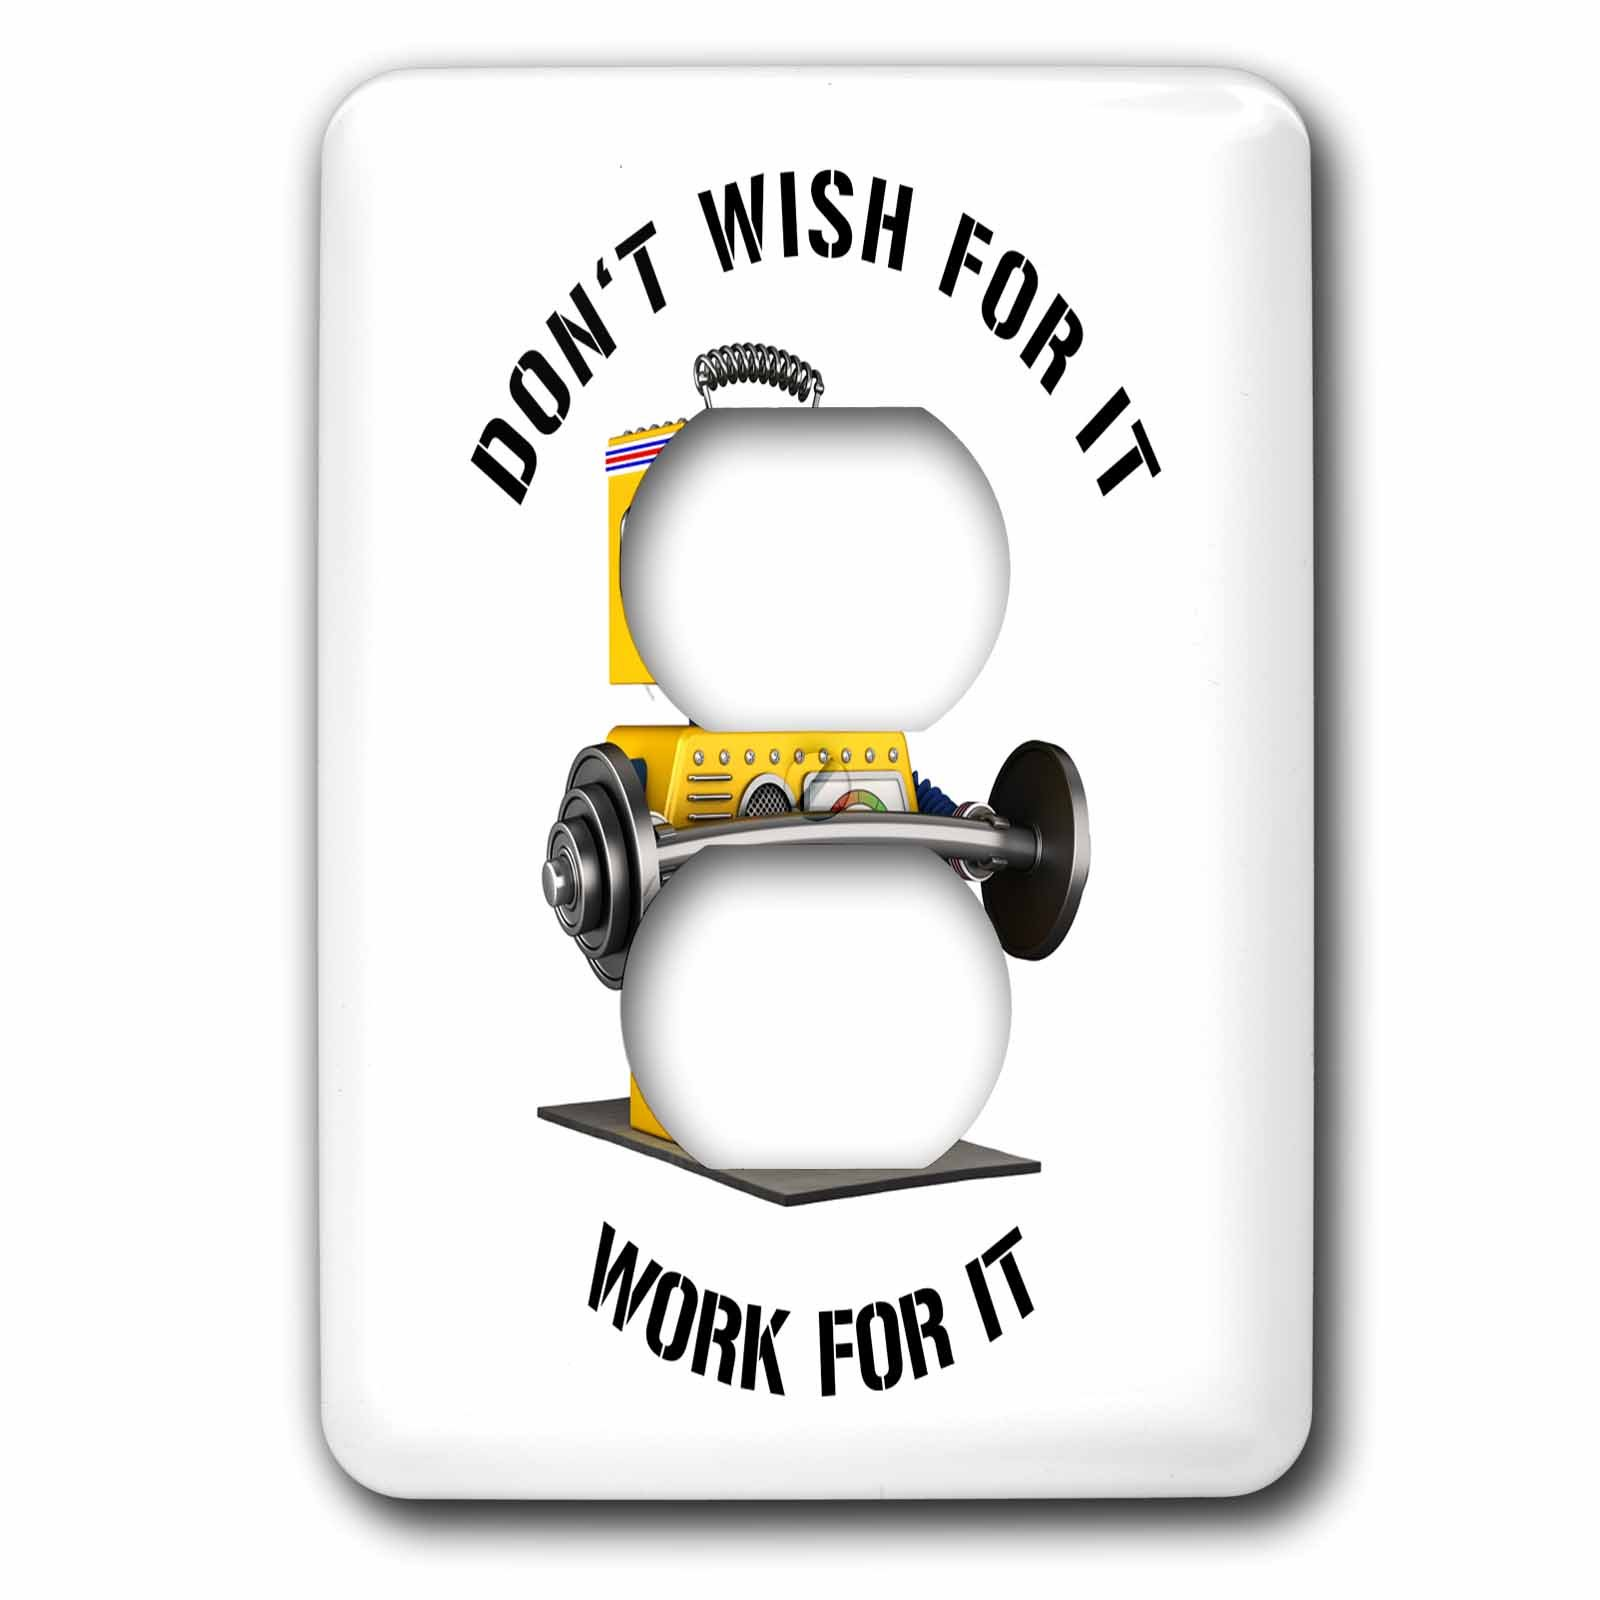 3dRose Carsten Reisinger - Illustrations - Do not wish for it - work for it funny robot quote - Light Switch Covers - 2 plug outlet cover (lsp_254079_6)